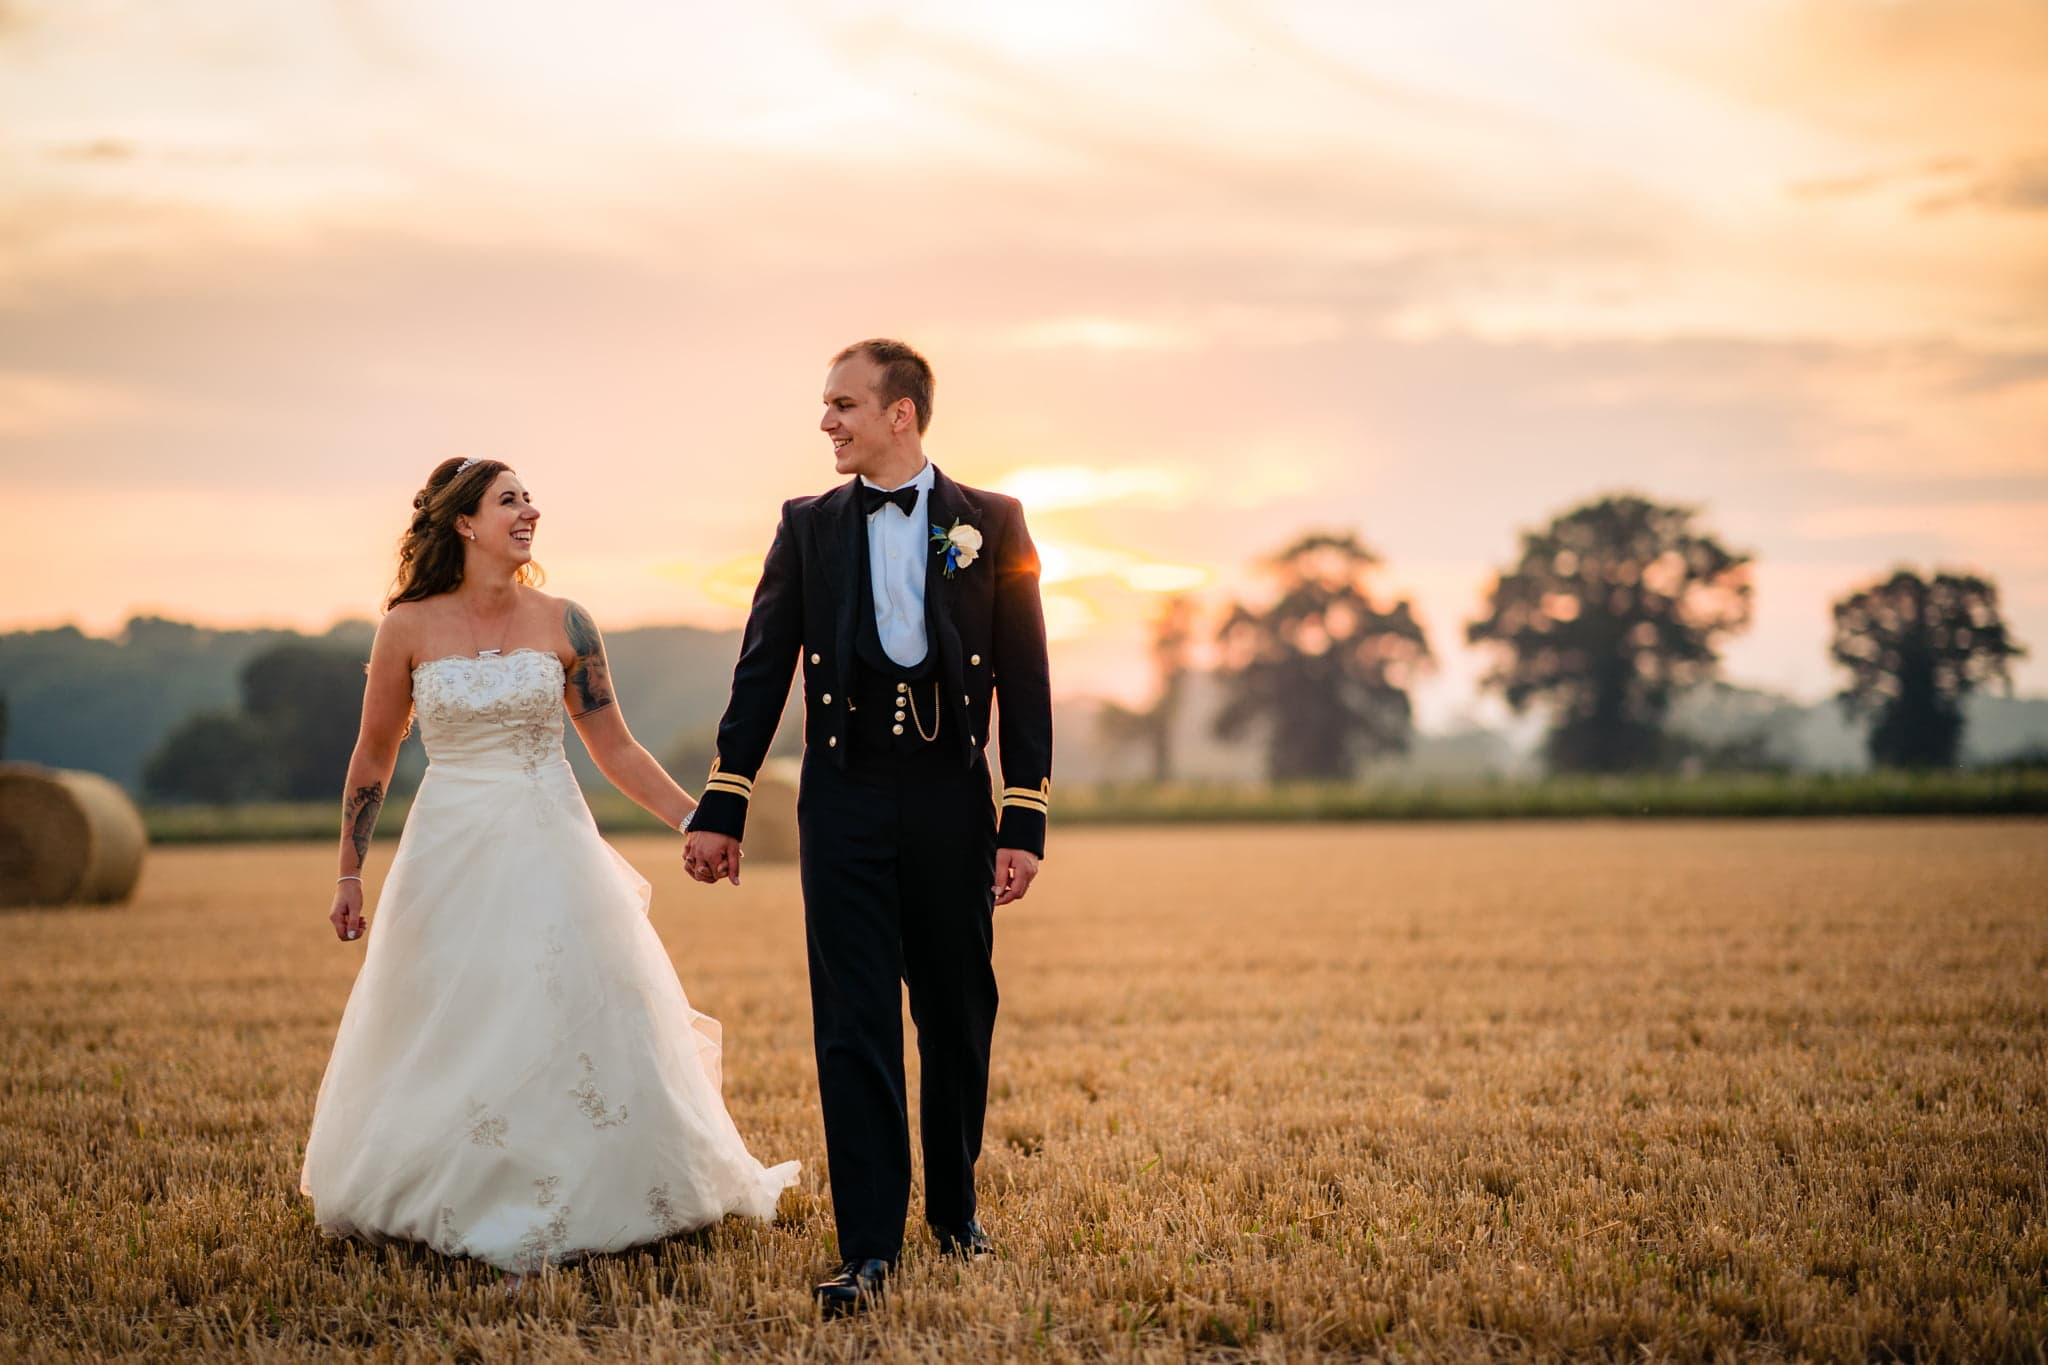 Bride and military groom in langley abbey wedding venue